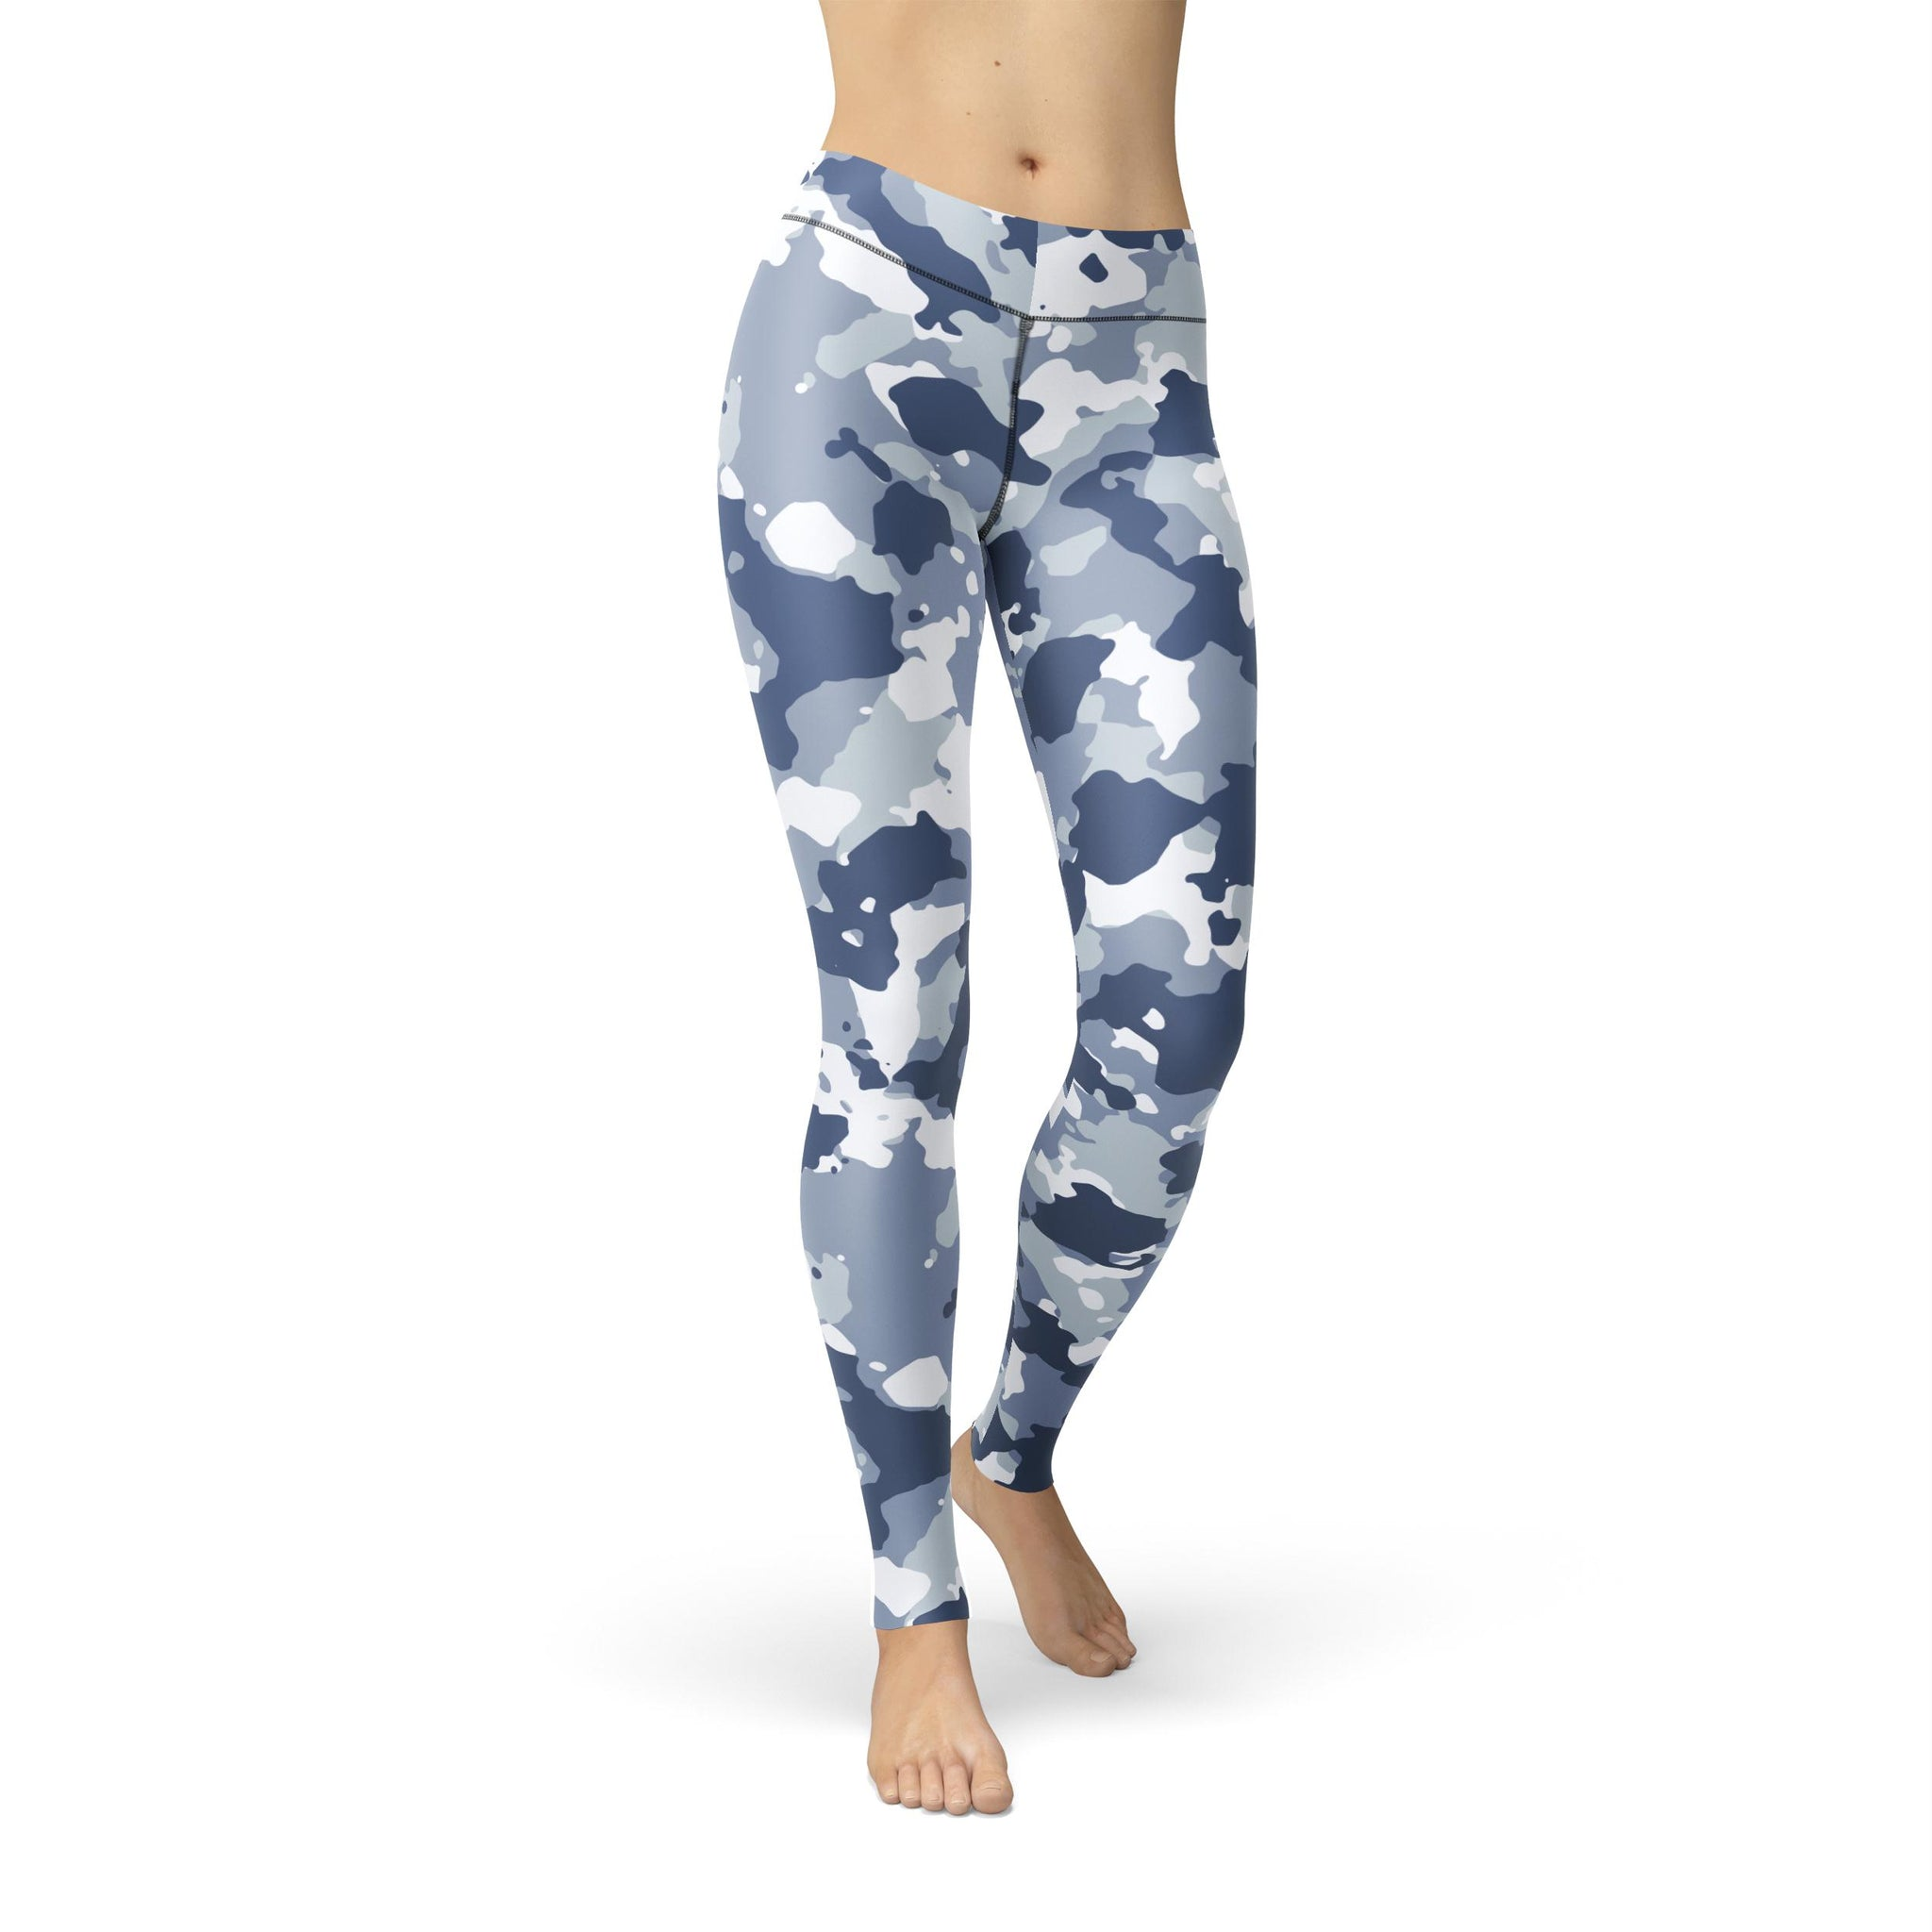 High-Waist Zen Dark Sky Camouflage Legging